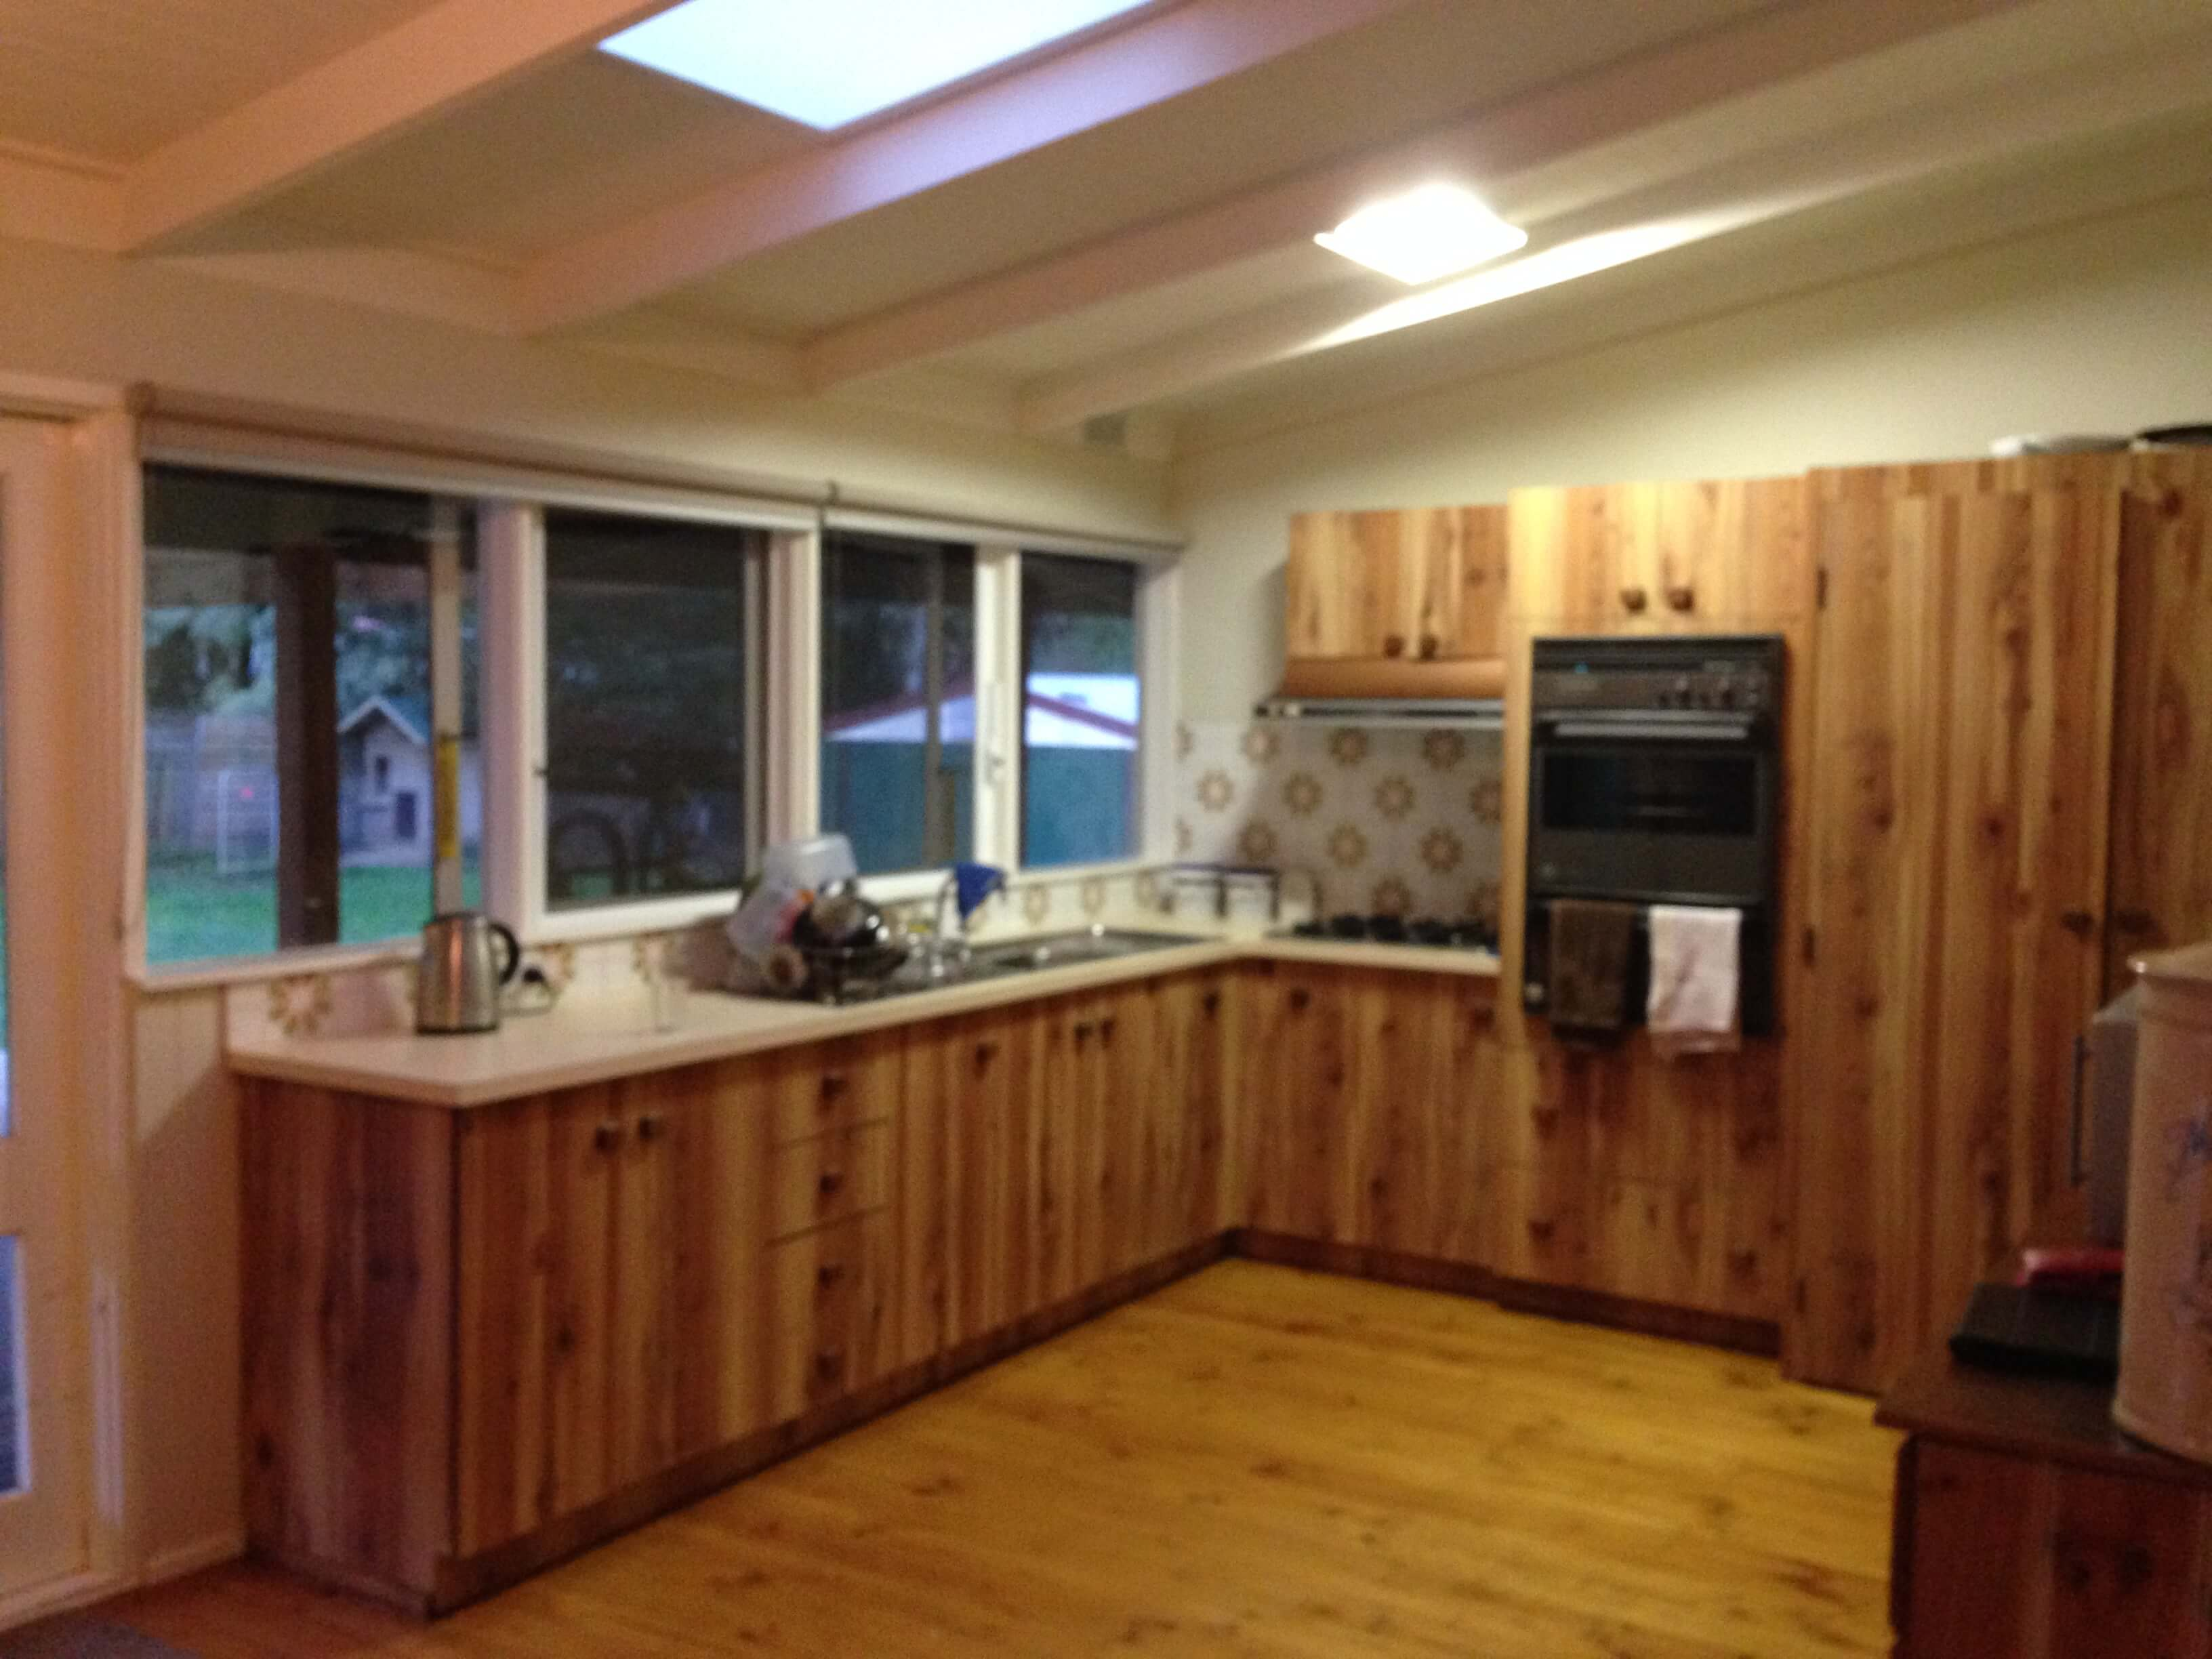 Contemporary Kitchen Image2